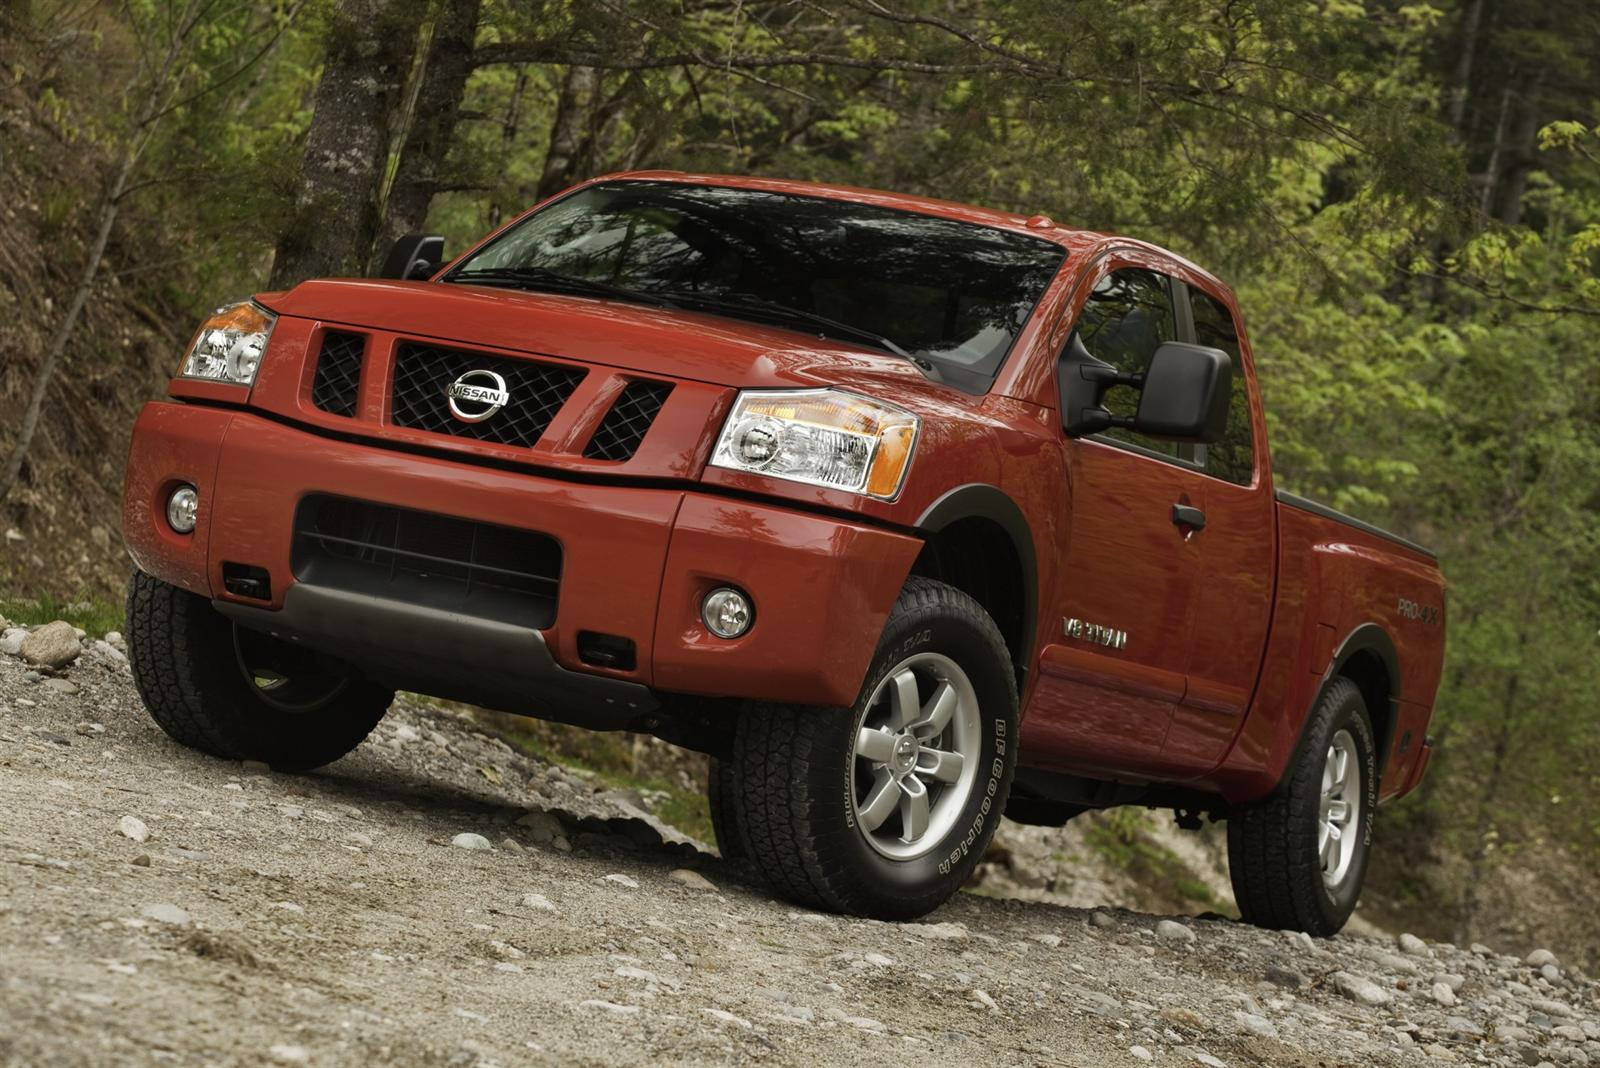 2011 Nissan Titan truck 1 2011, Nissan's take on the large size truck